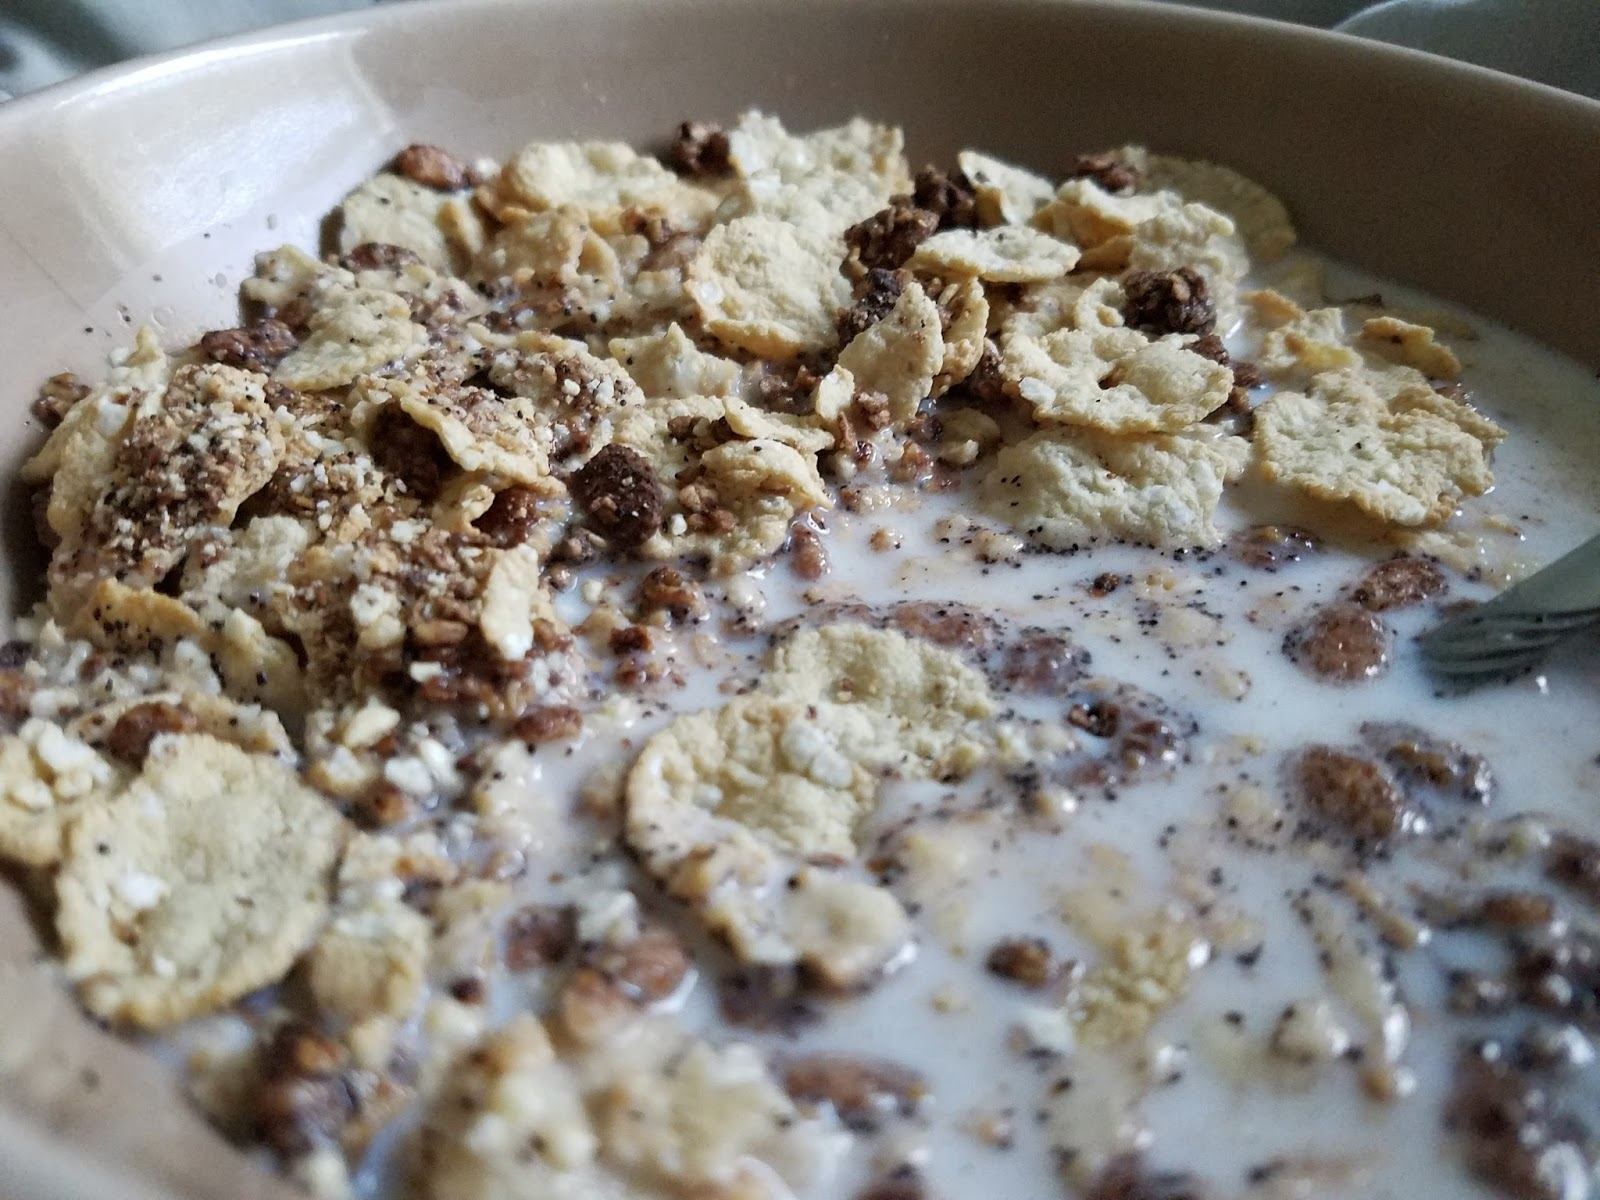 Twisted chocolate limited edition products by giant foodstores the cereal was great it was rich with chocolate yummy goodness and it tasted healthy it didnt get soggy fast and is a well developed product ccuart Choice Image